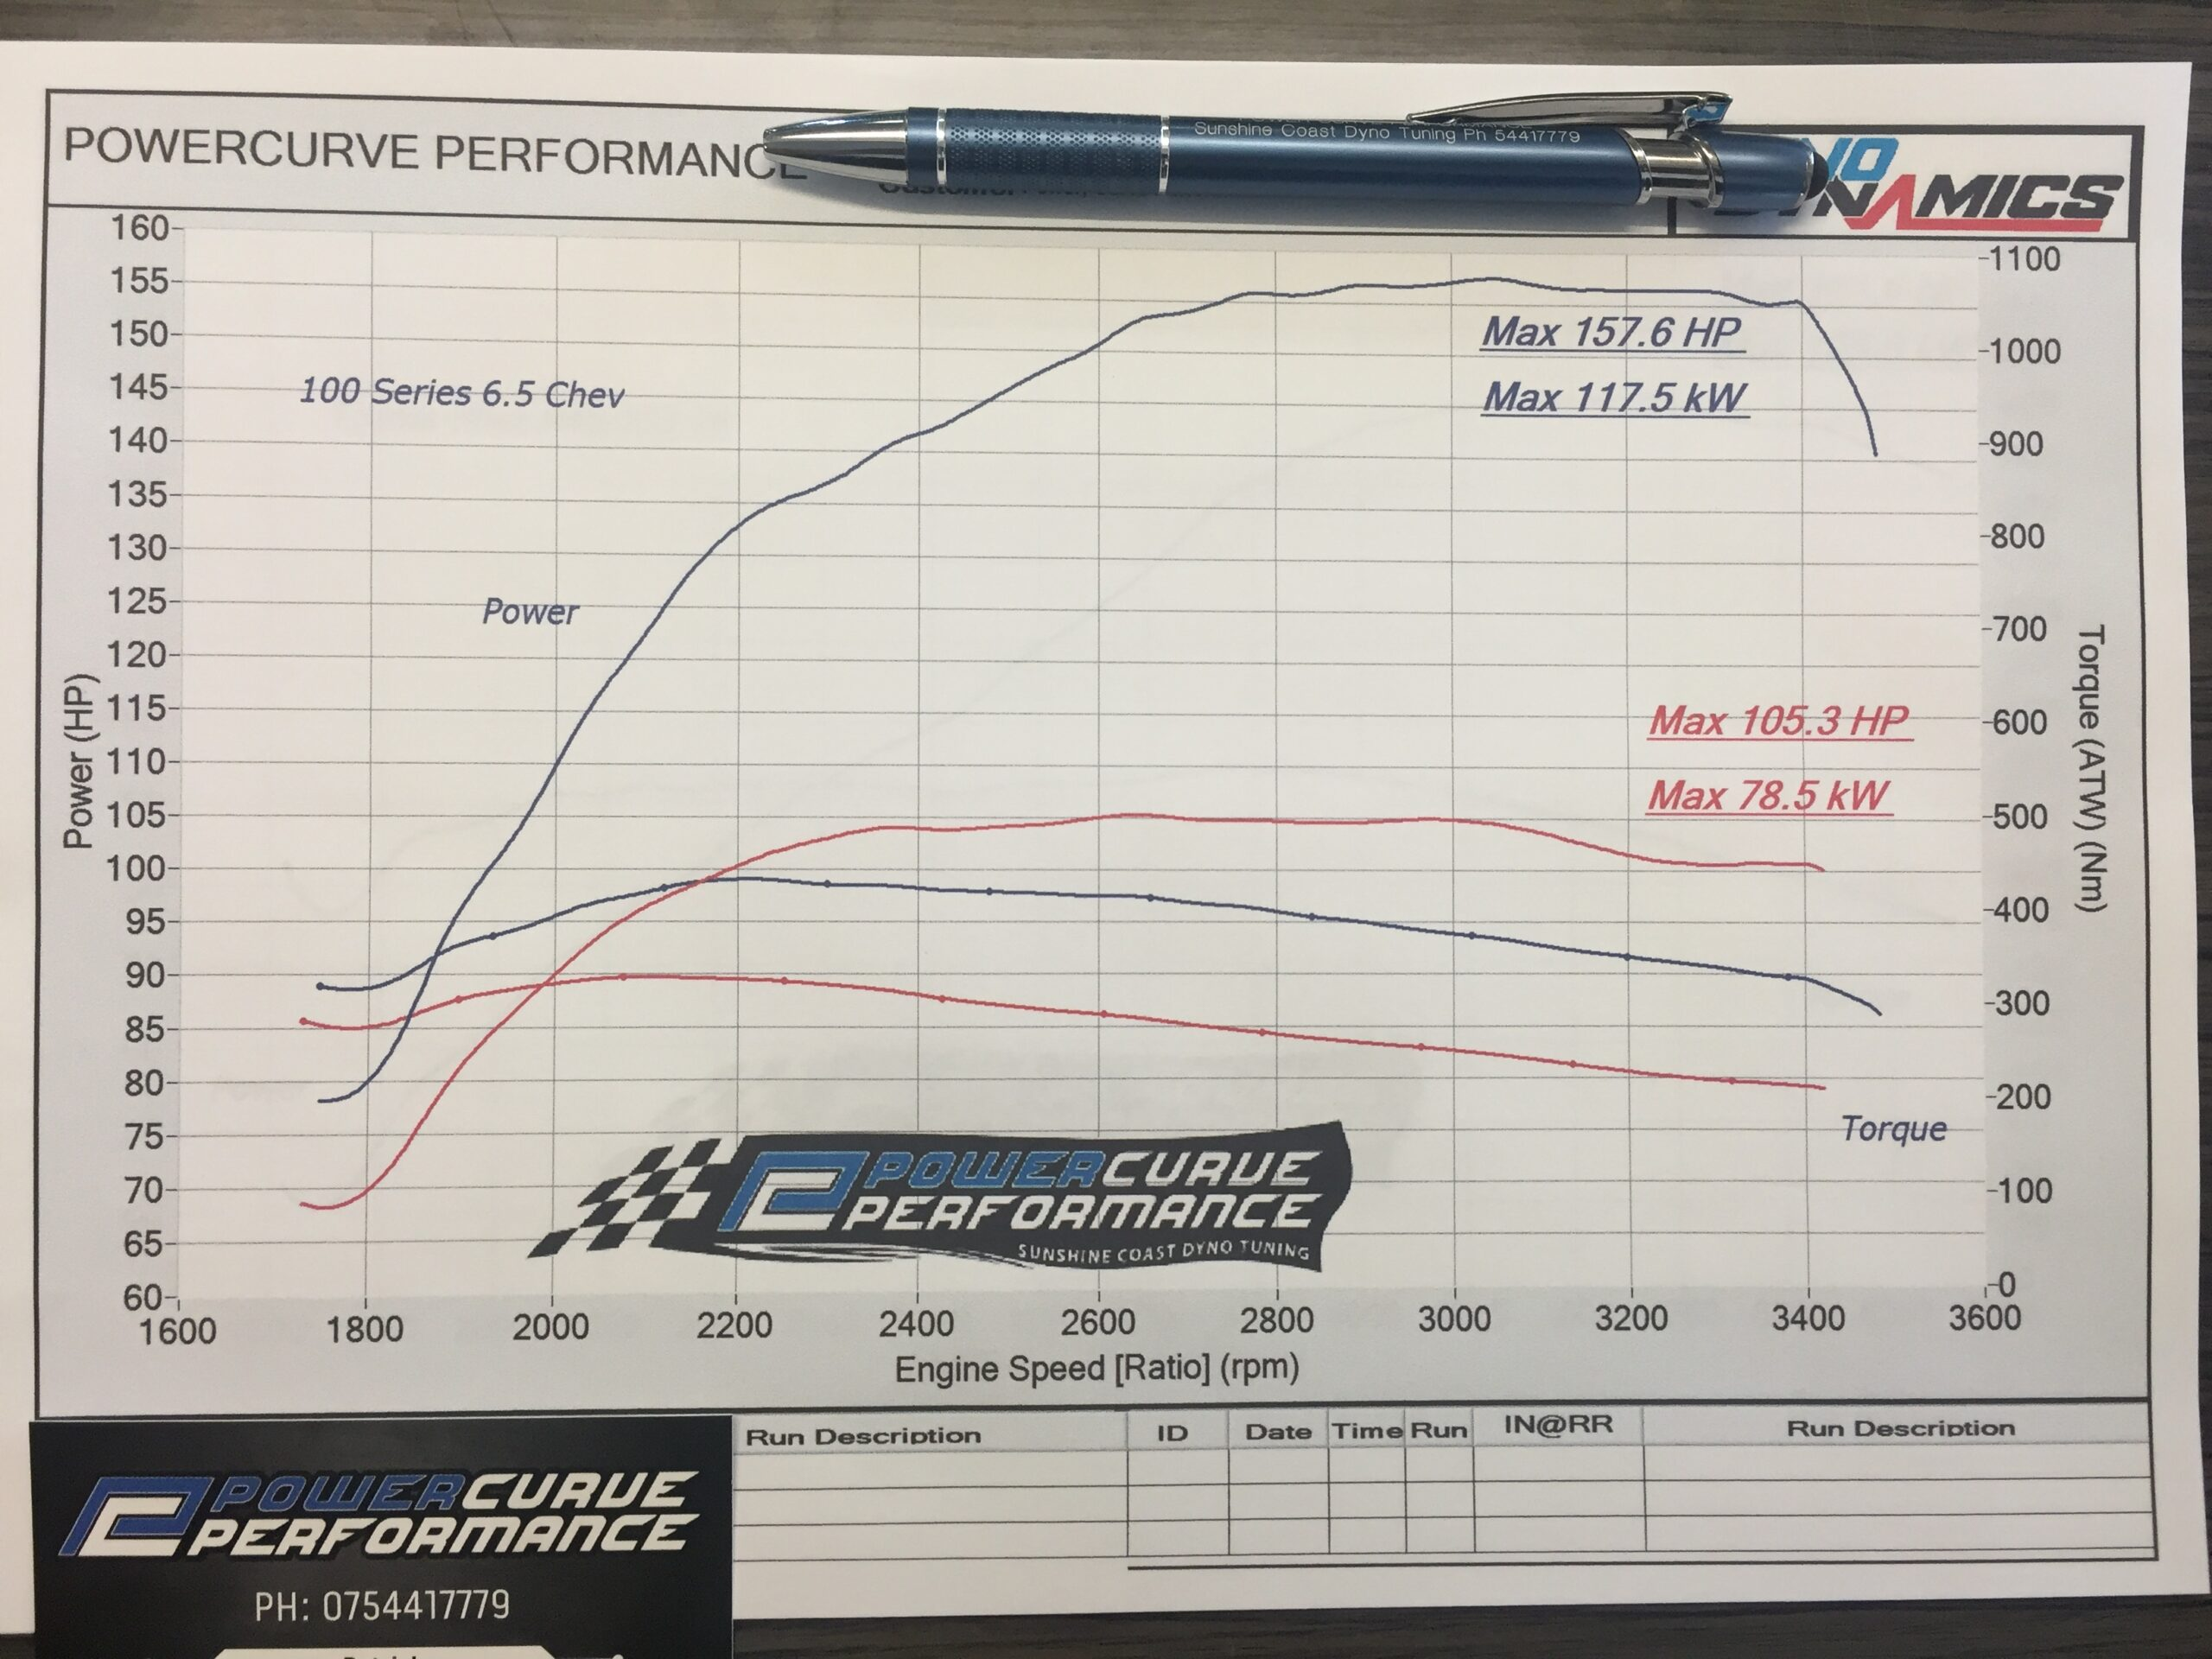 Brunswick Diesel 6.5 Turbo Upgrade, dyno sheet, power curve performance, engine conversion, sunshine coast, dyno tuning, diesel dyno tuning, ecu tuning, superior engineering, exhaust